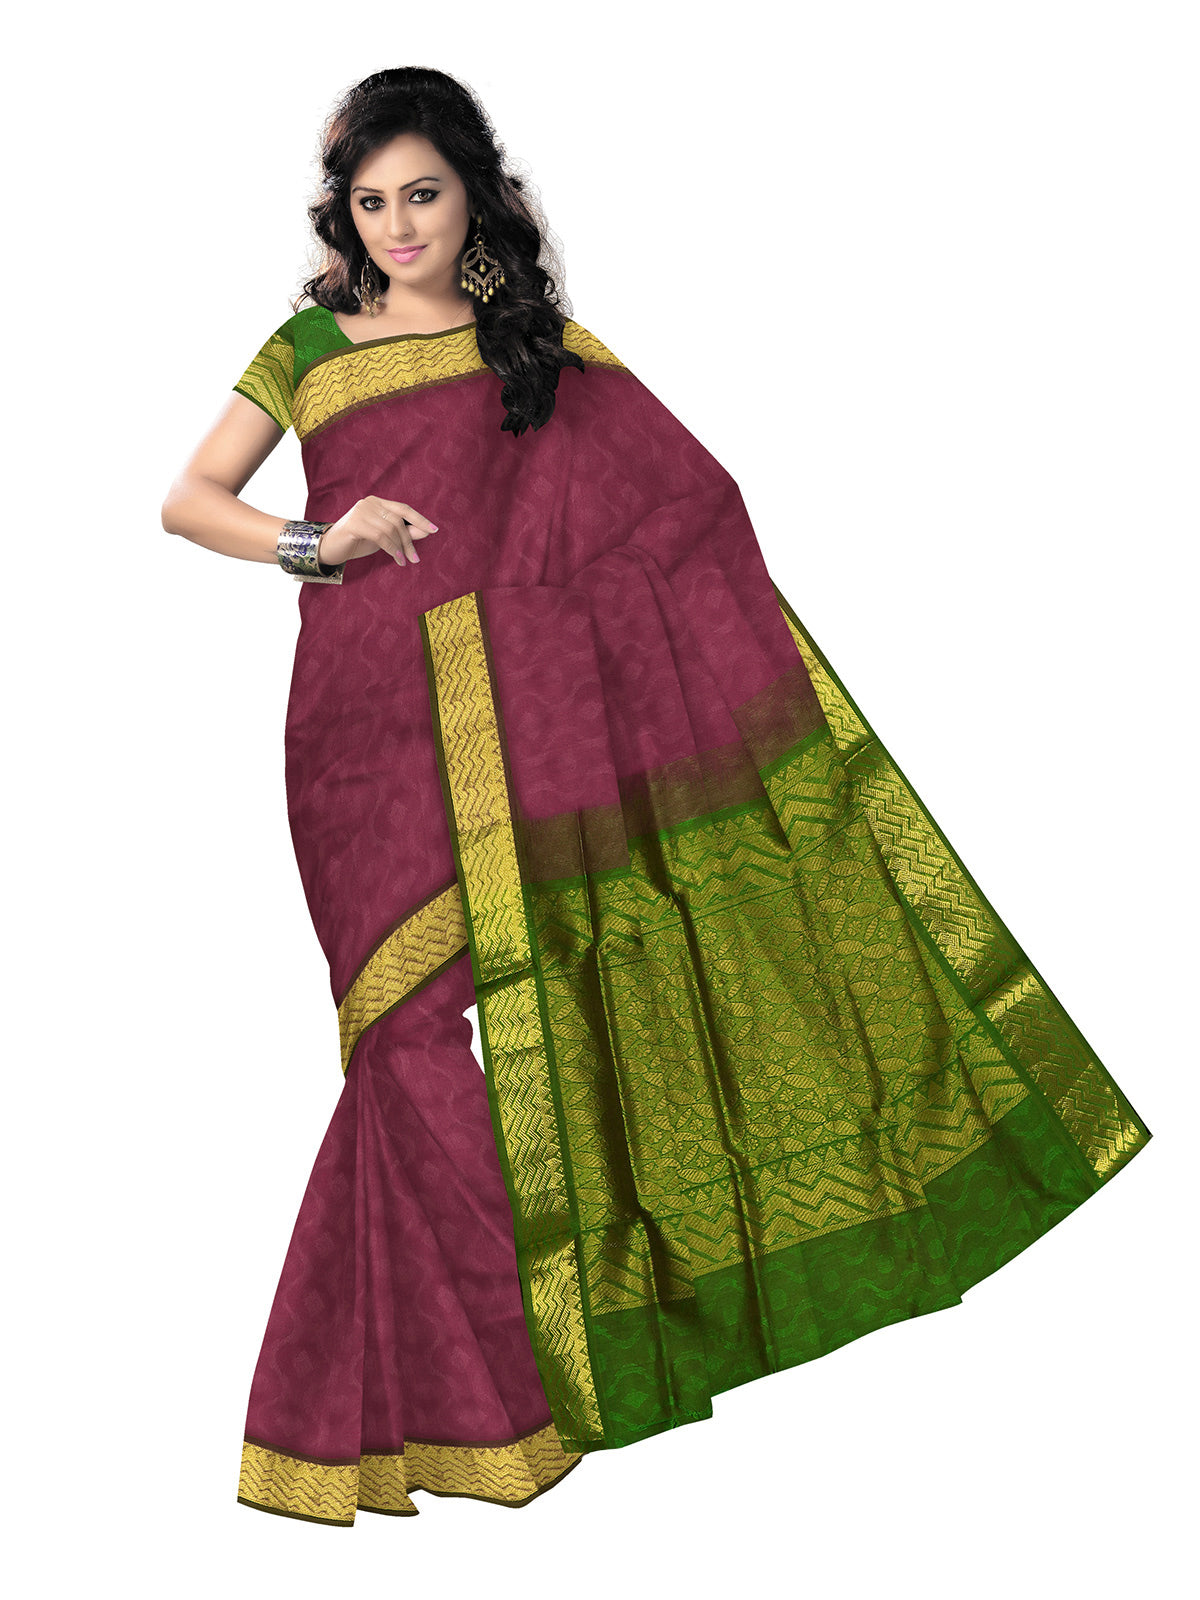 Silk Cotton Saree - Onion pink and Mehandi Green with Wave zari border jacquard